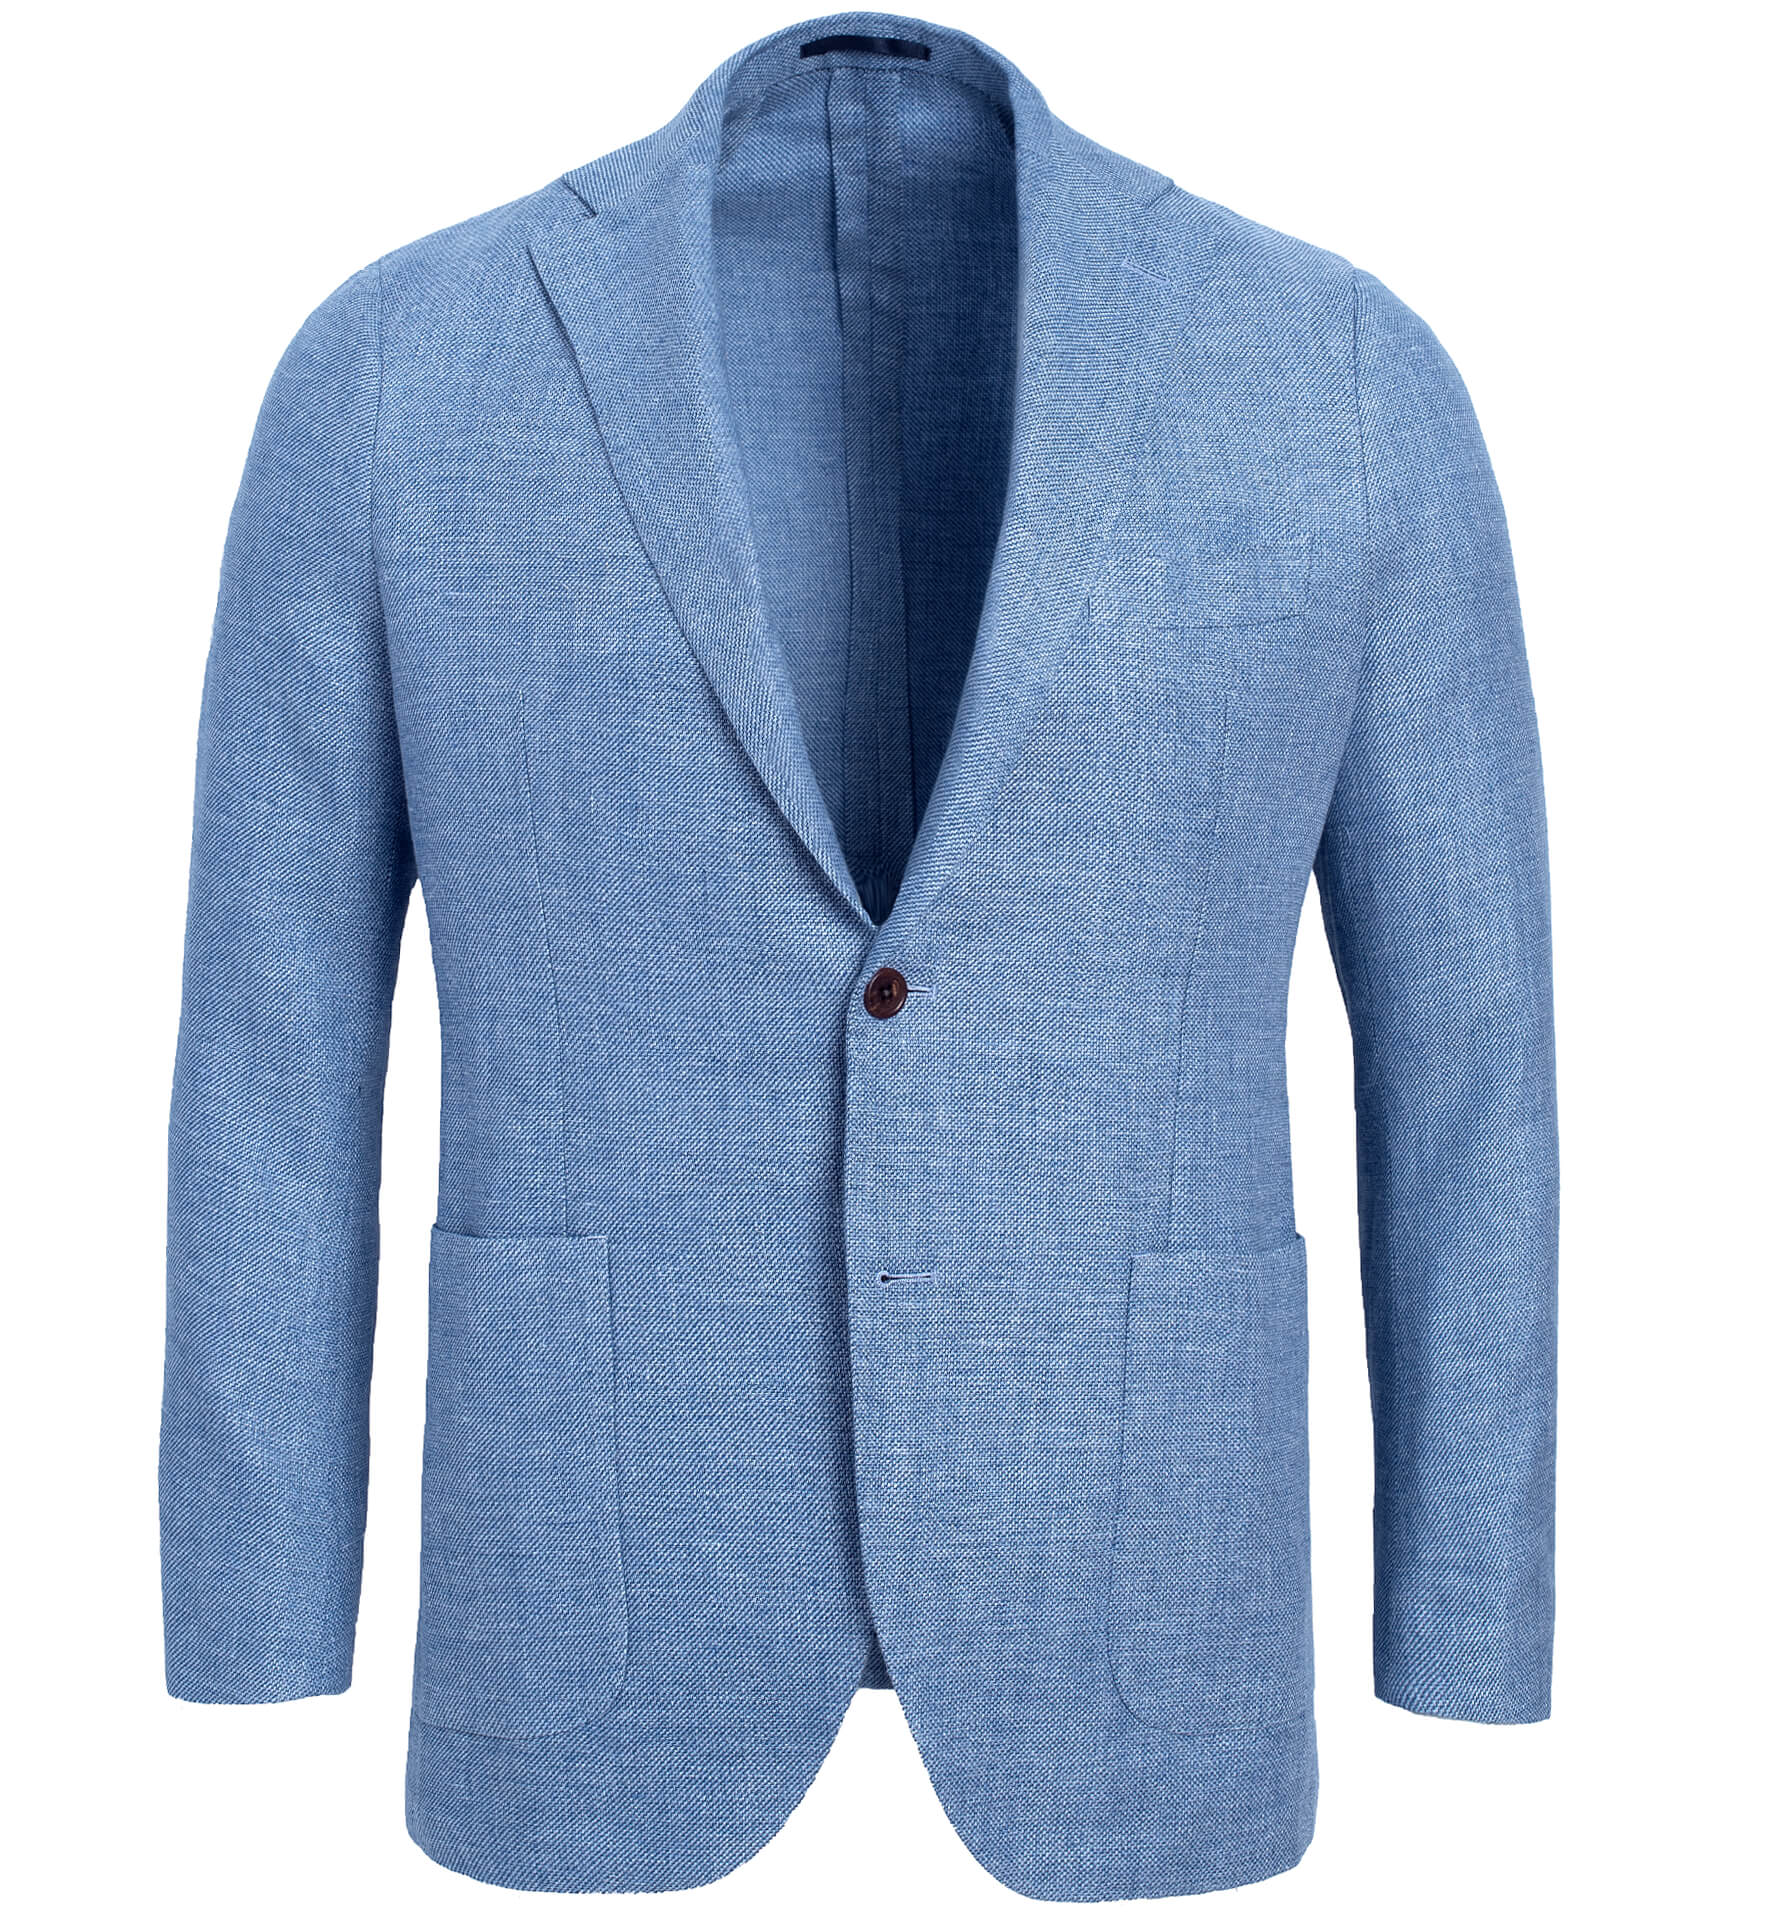 Zoom Image of Bedford Sky Blue Linen and Wool Hopsack Jacket